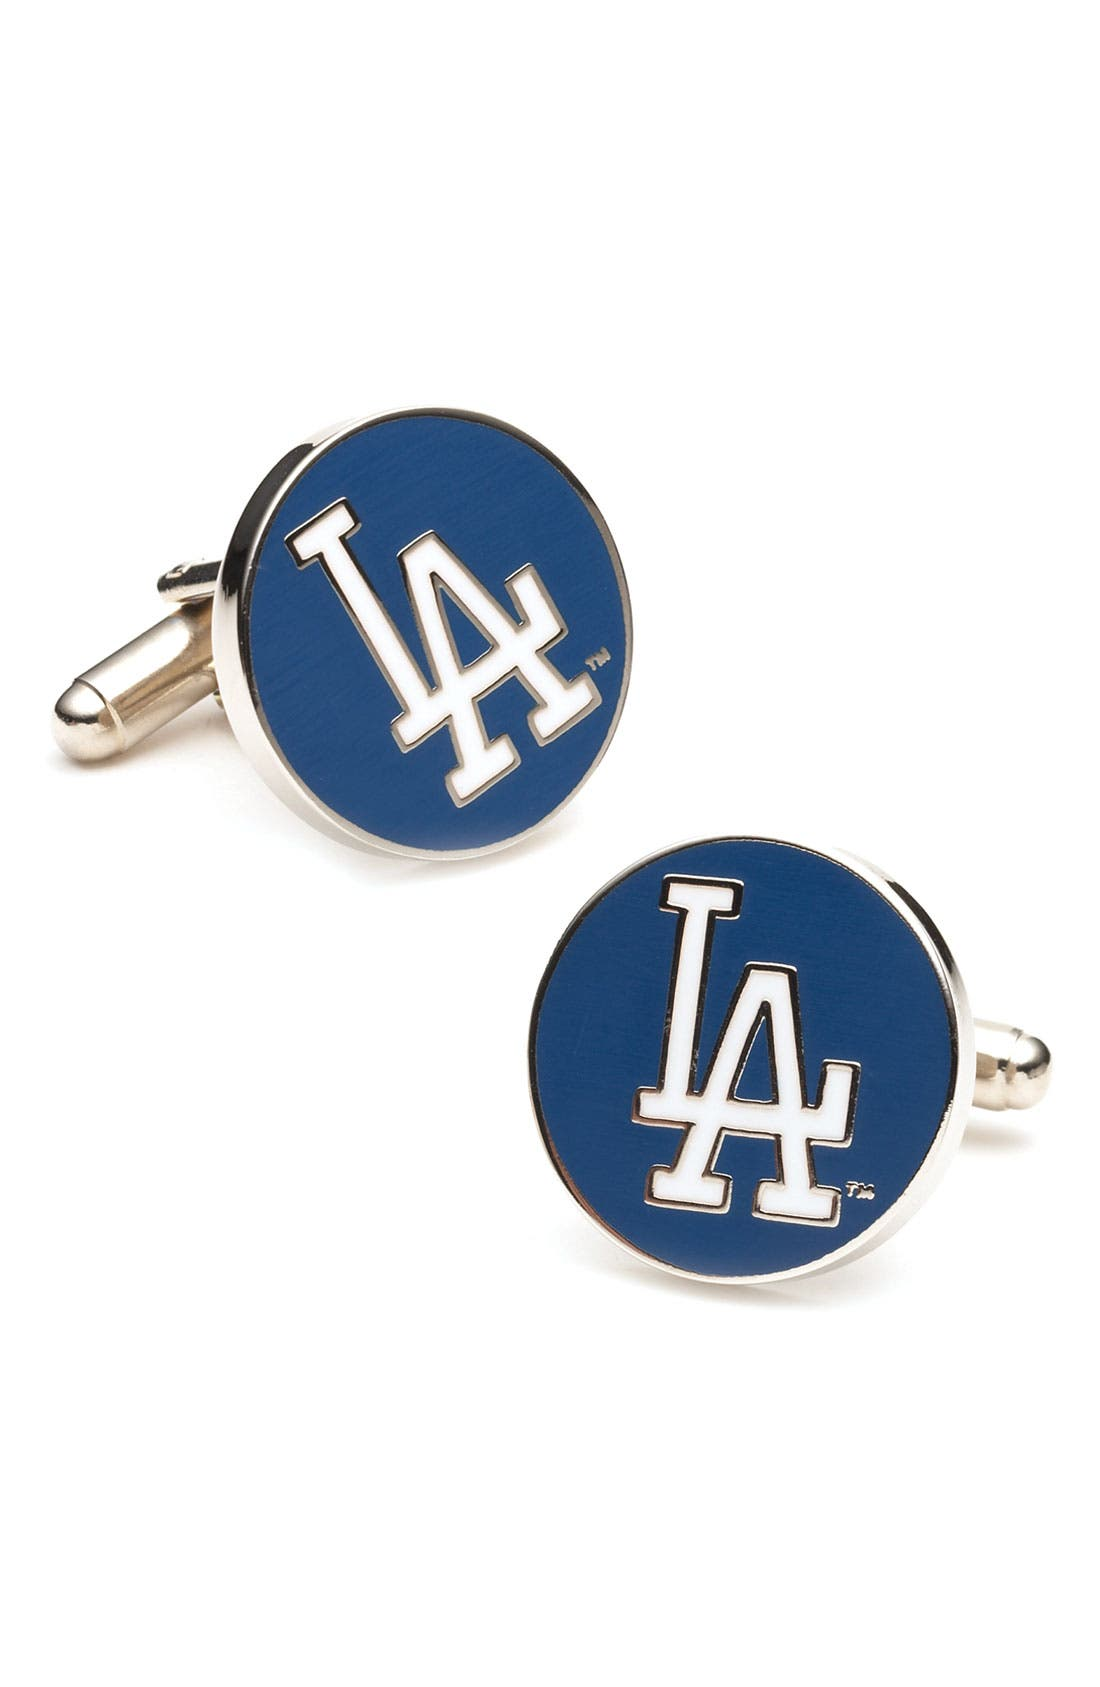 'Los Angeles Dodgers' Cuff Links,                             Main thumbnail 1, color,                             400